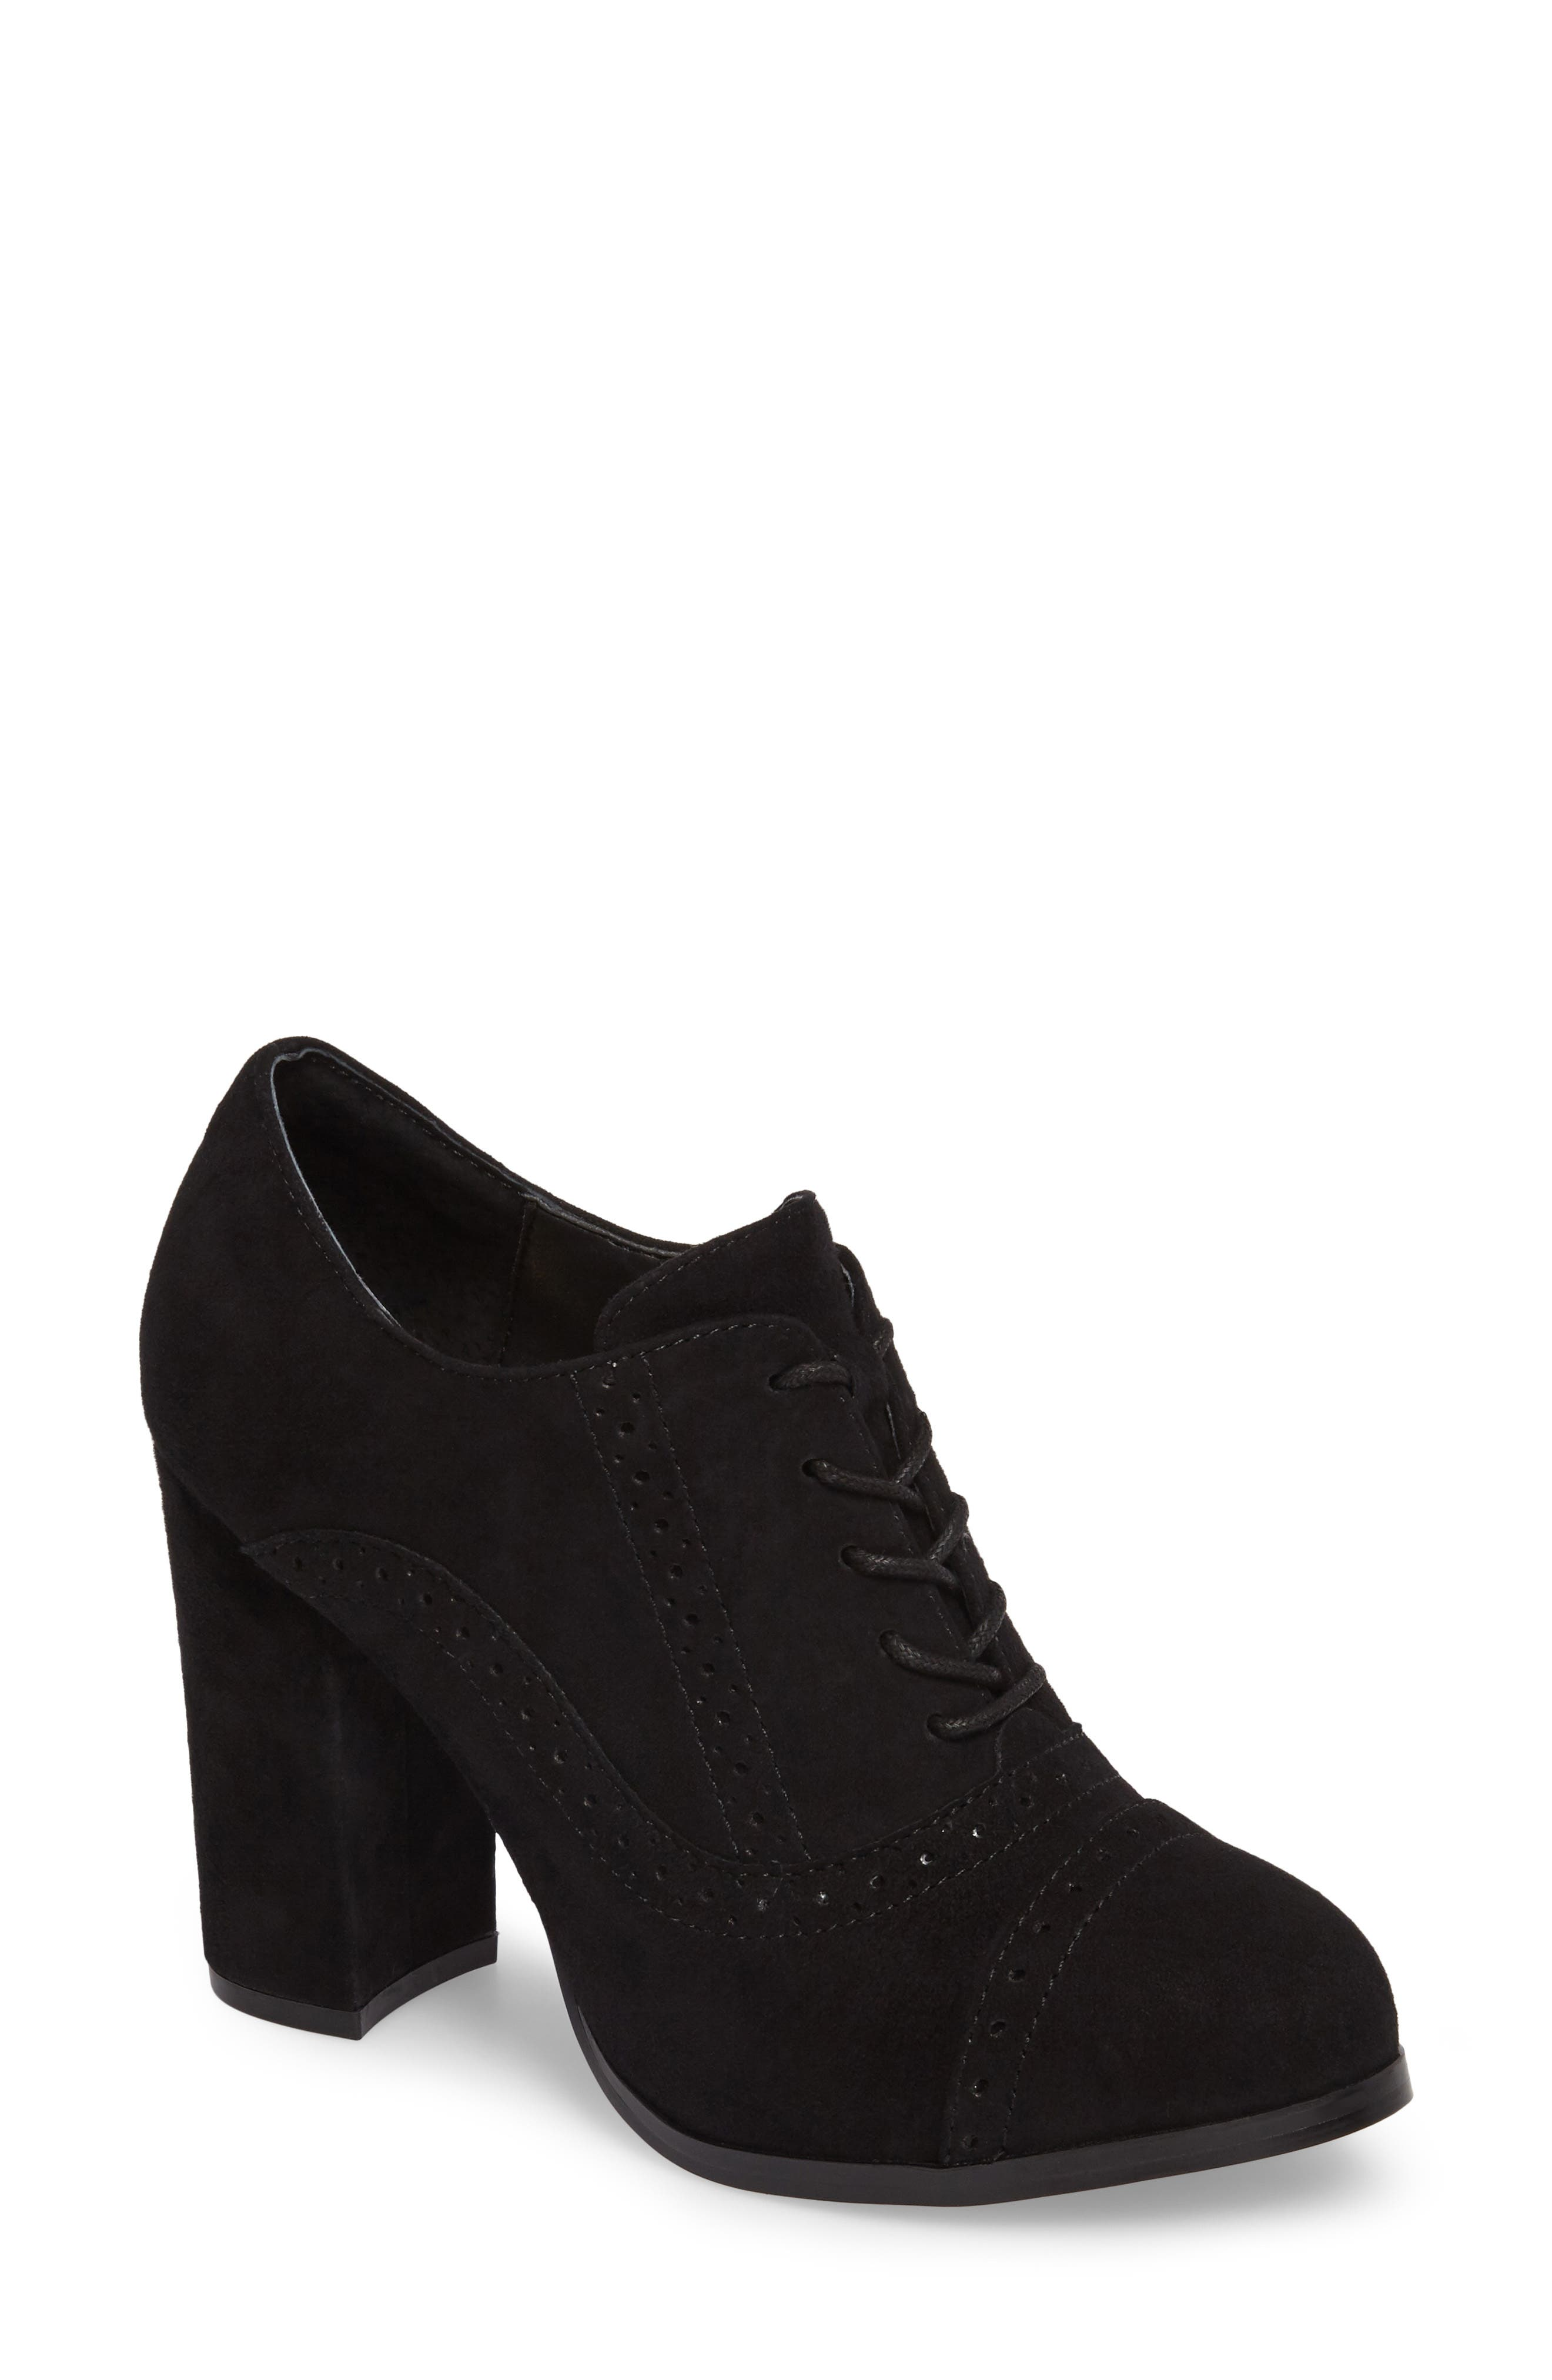 ISOLÁ Holli Oxford Pump, Main, color, BLACK SUEDE